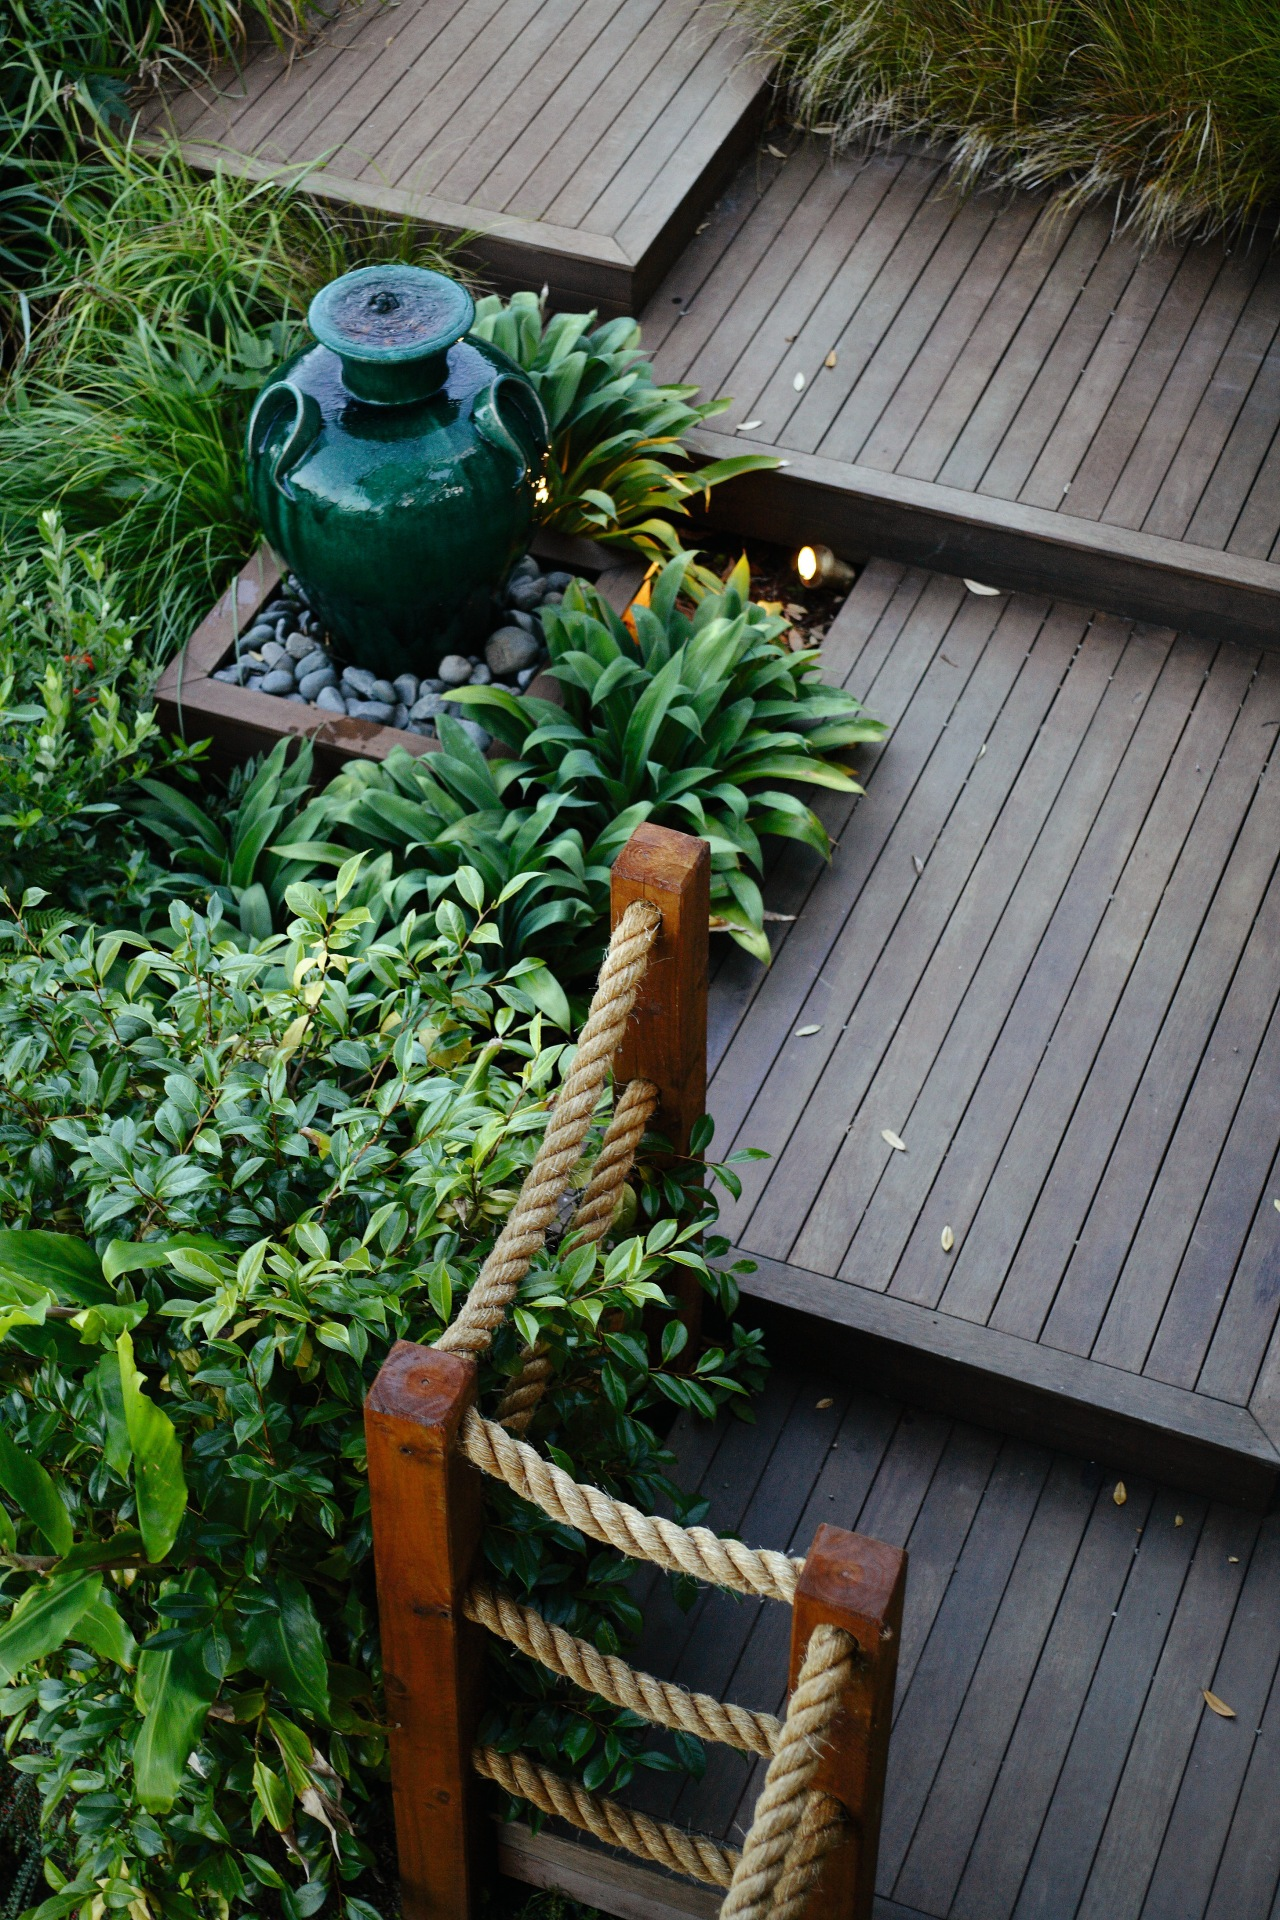 Go for a balance of hardscaping and softscaping. garden, leaf, outdoor structure, plant, tree, yard, gray, green